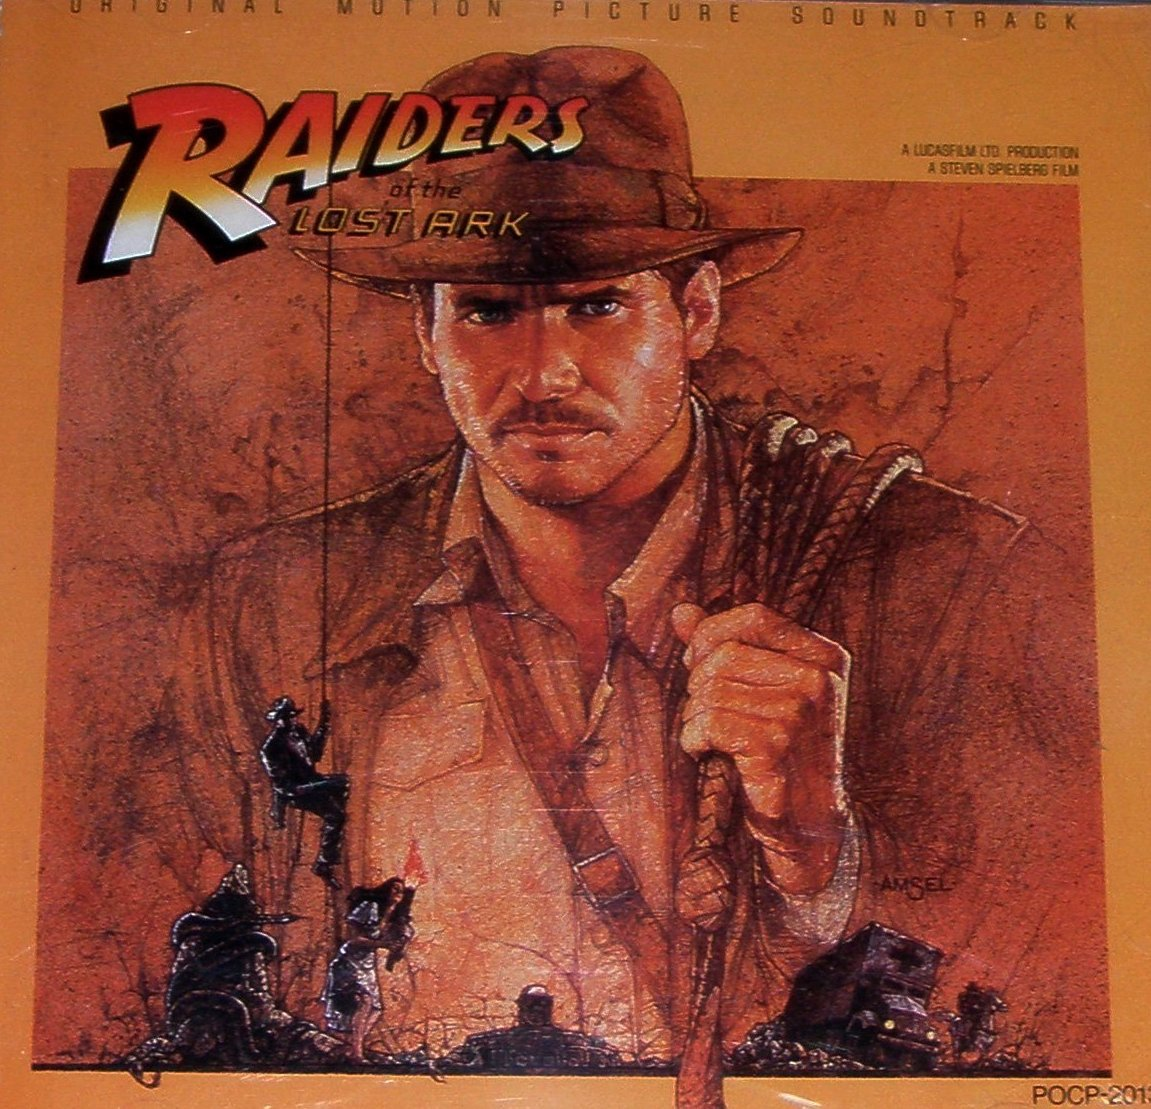 Primary image for CD John Williams Raiders of Lost Ark Original Motion Picture Soundtrack - 1981